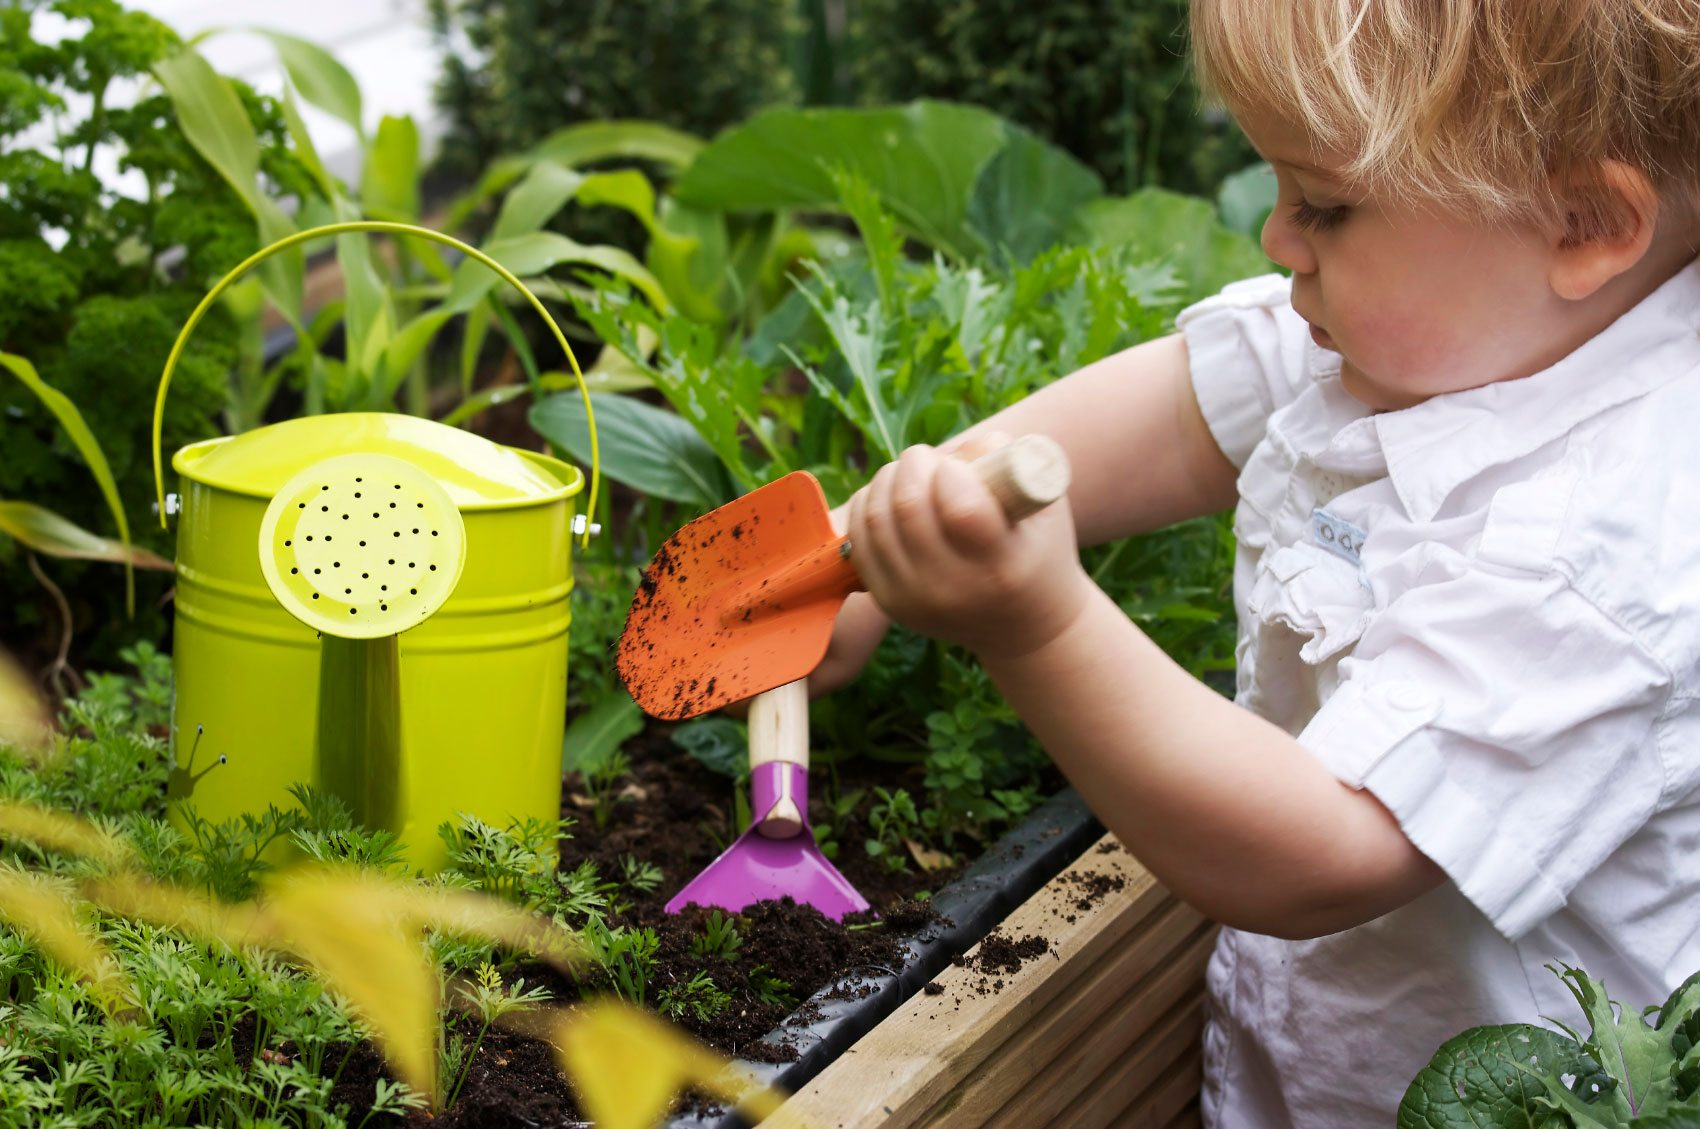 Garden Themes For Toddlers - How To Garden With Young Kids